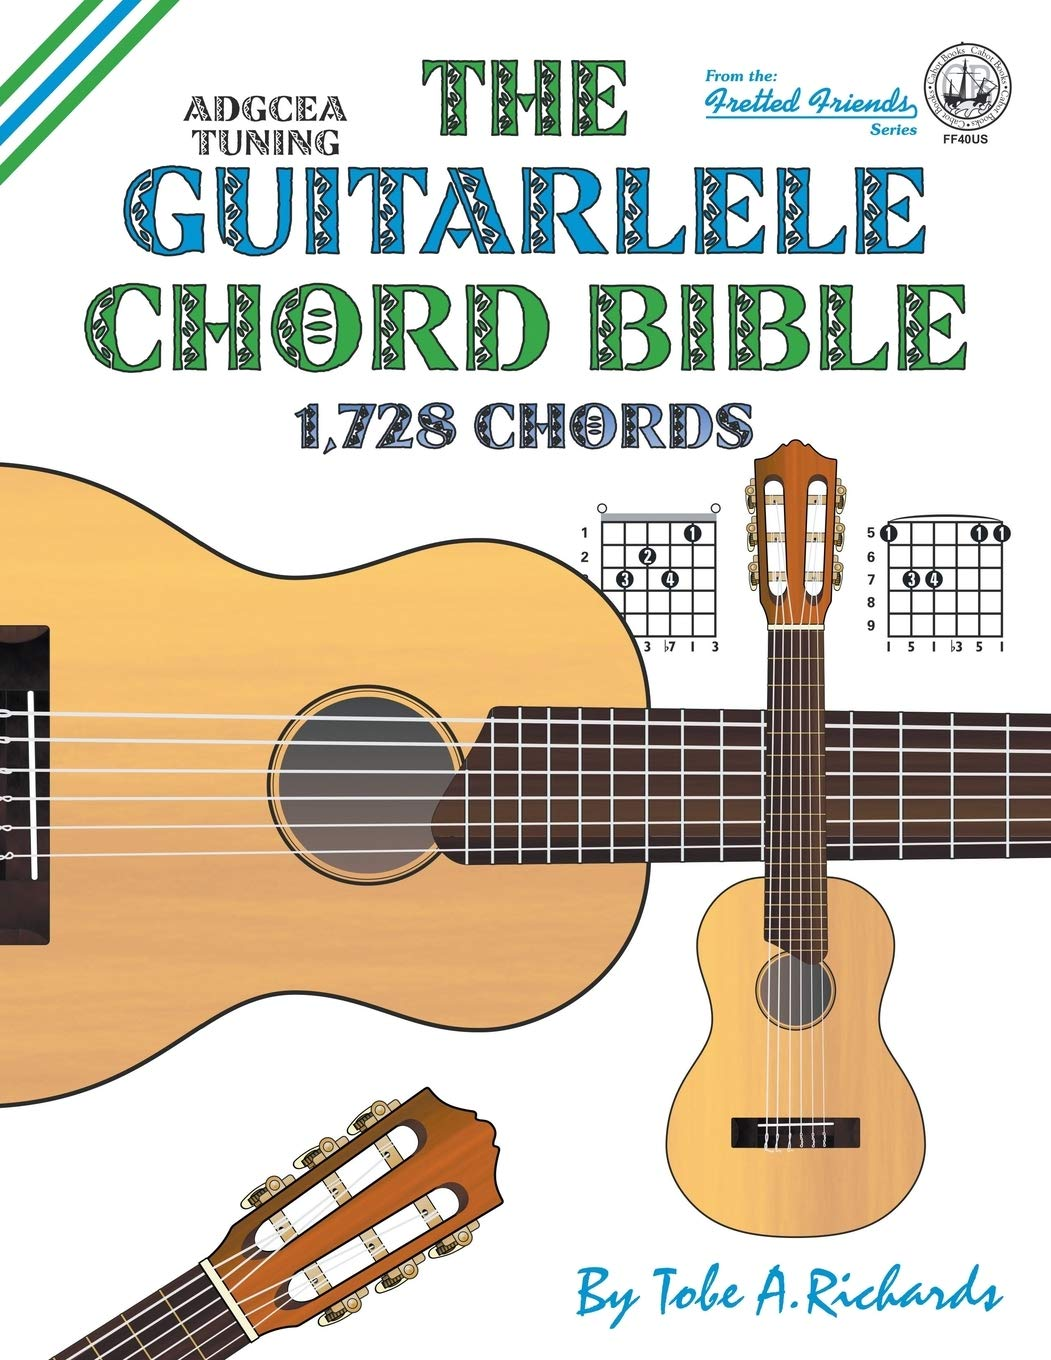 The Guitalele Chord Bible: ADGCEA Standard Tuning 1,728 ...